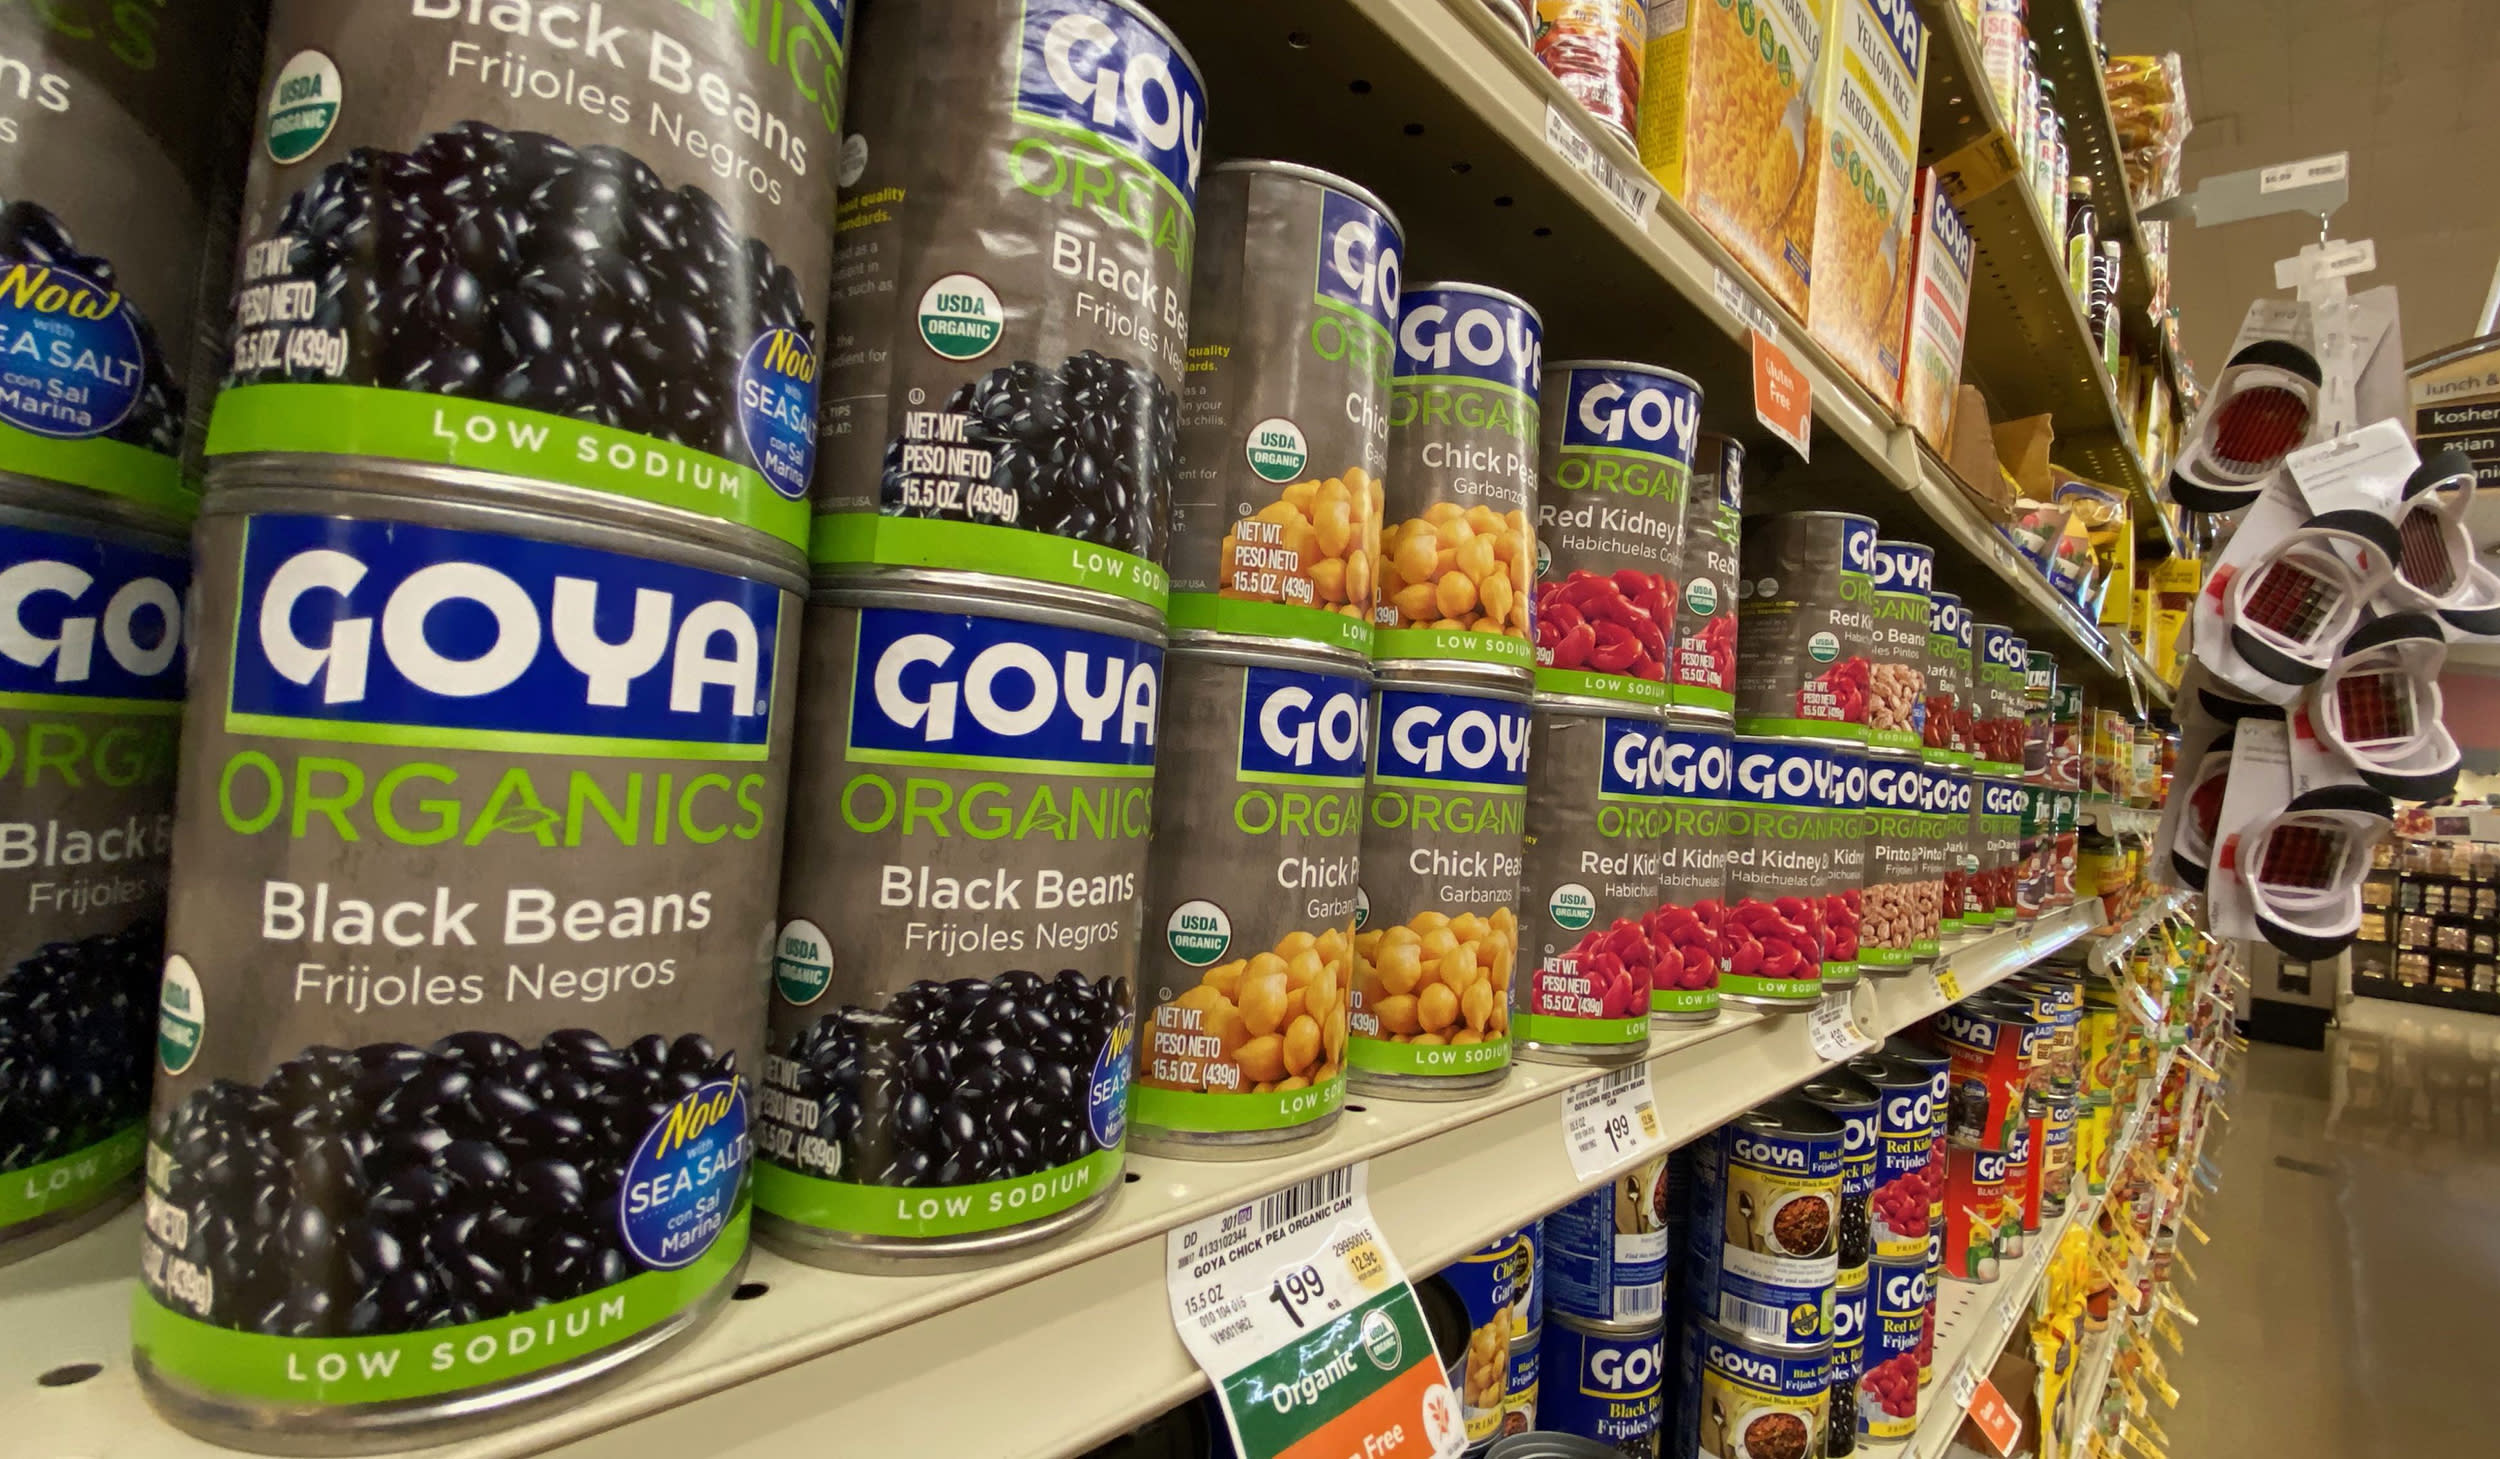 Goya CEO's cozying up to Trump may have backfired, study shows